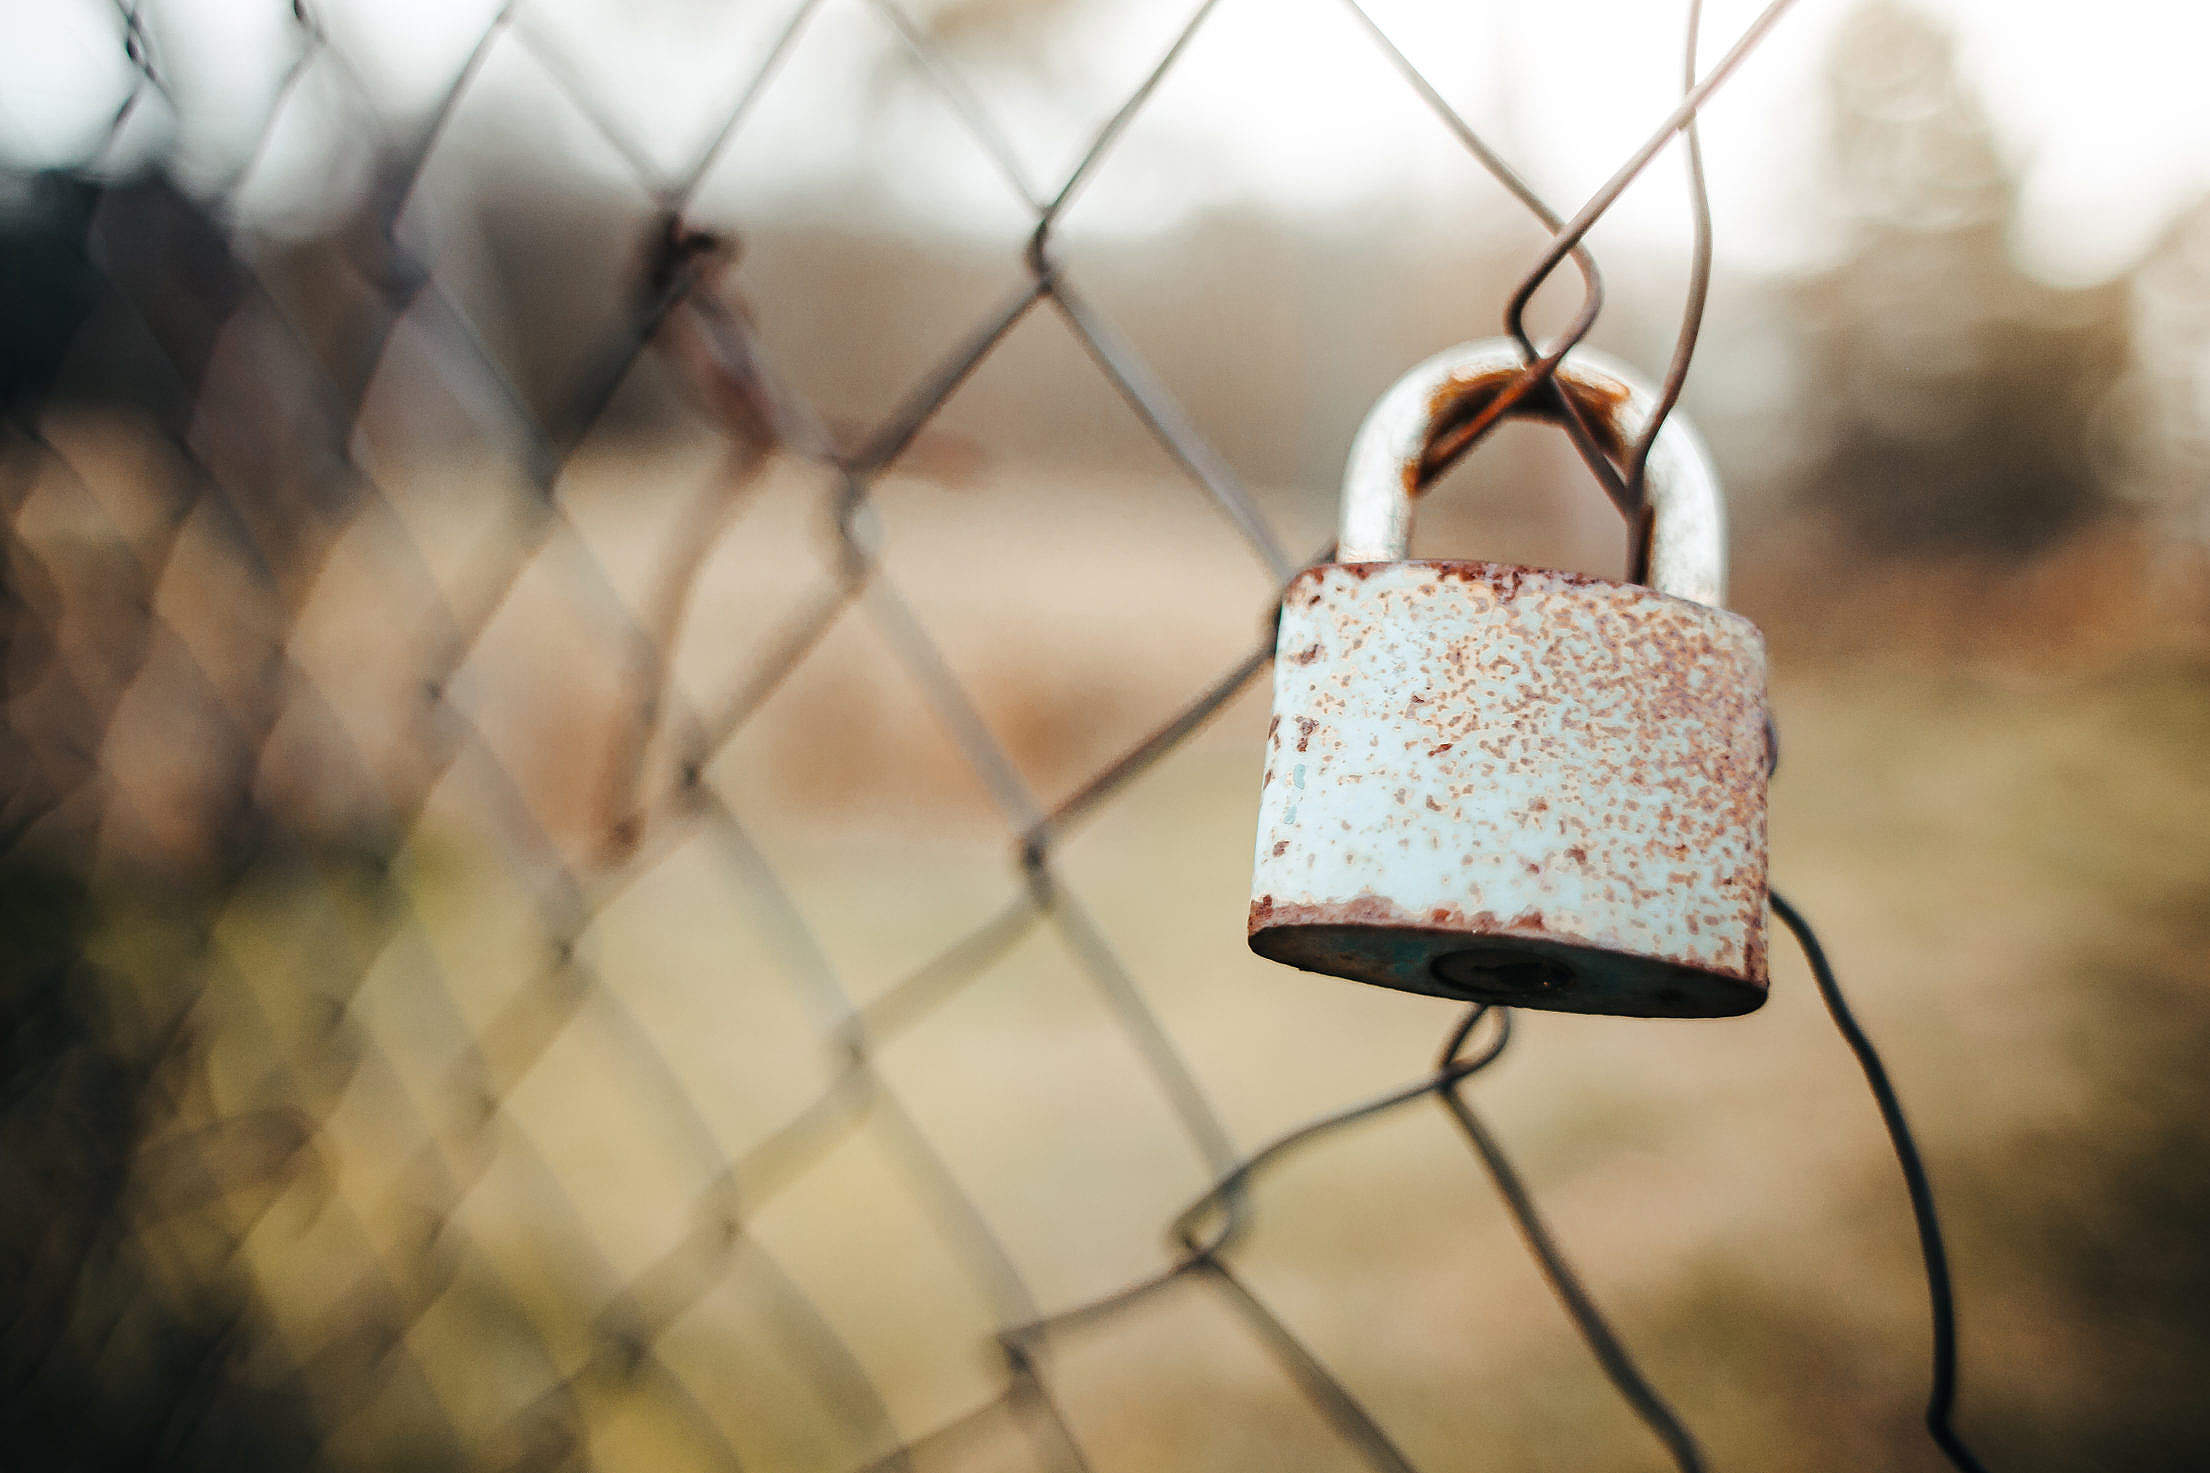 Download Old Lock on the Fence Free Stock Photo